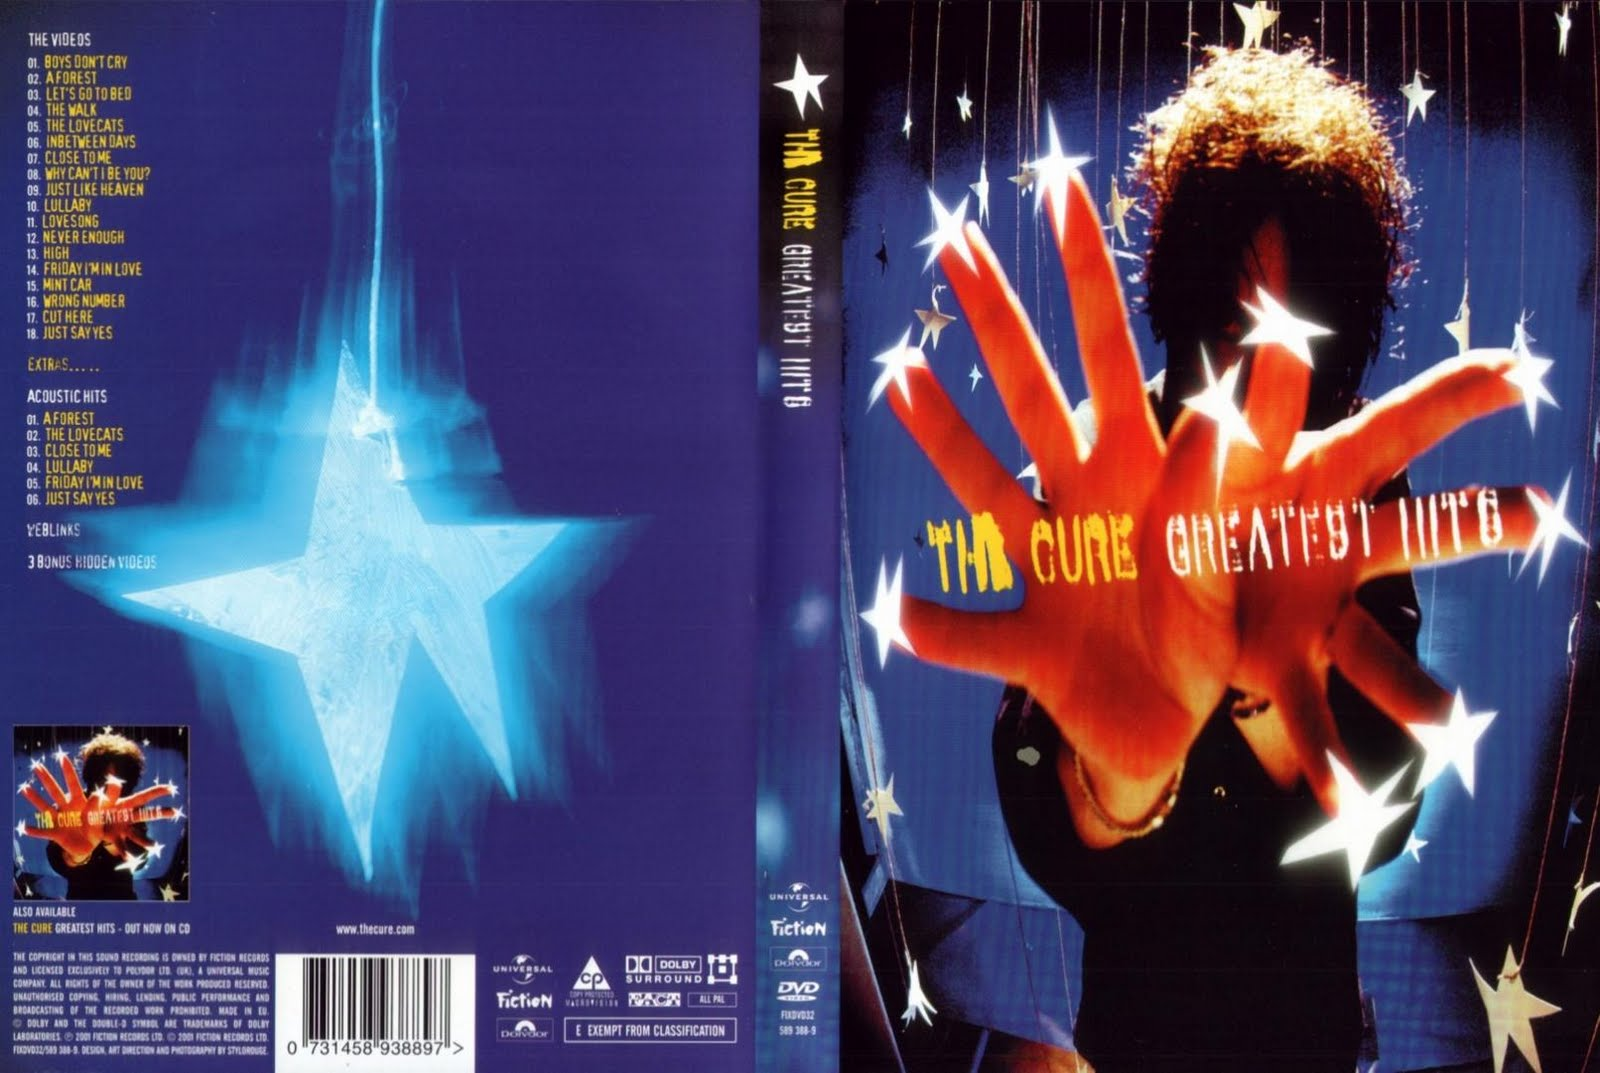 the cure descargar discografia